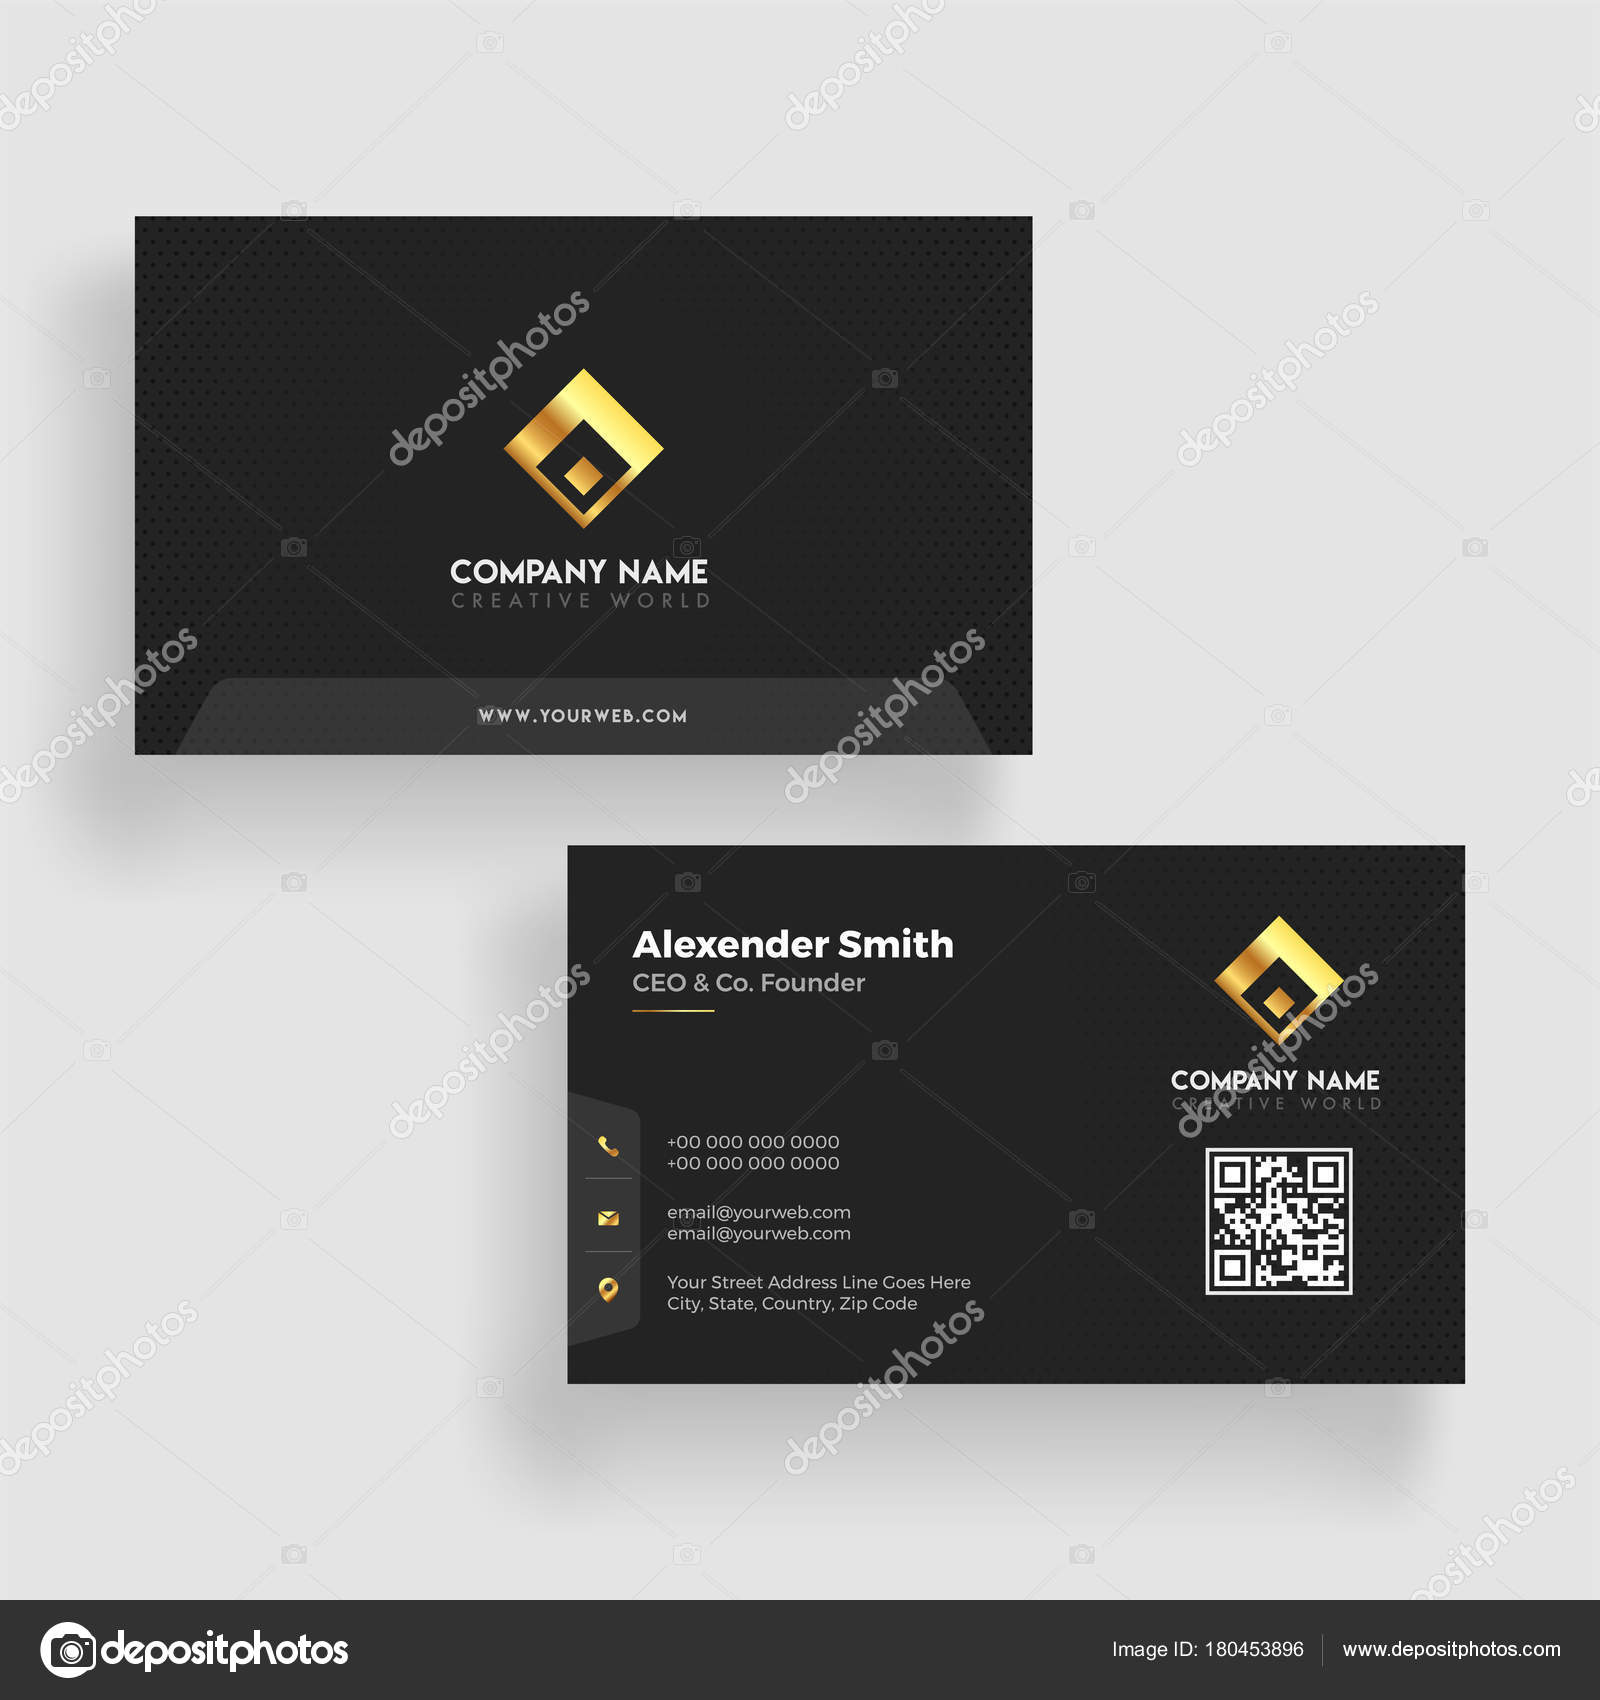 Modern business card template design both sided contact card f modern business card template design both sided contact card f stock vector accmission Gallery